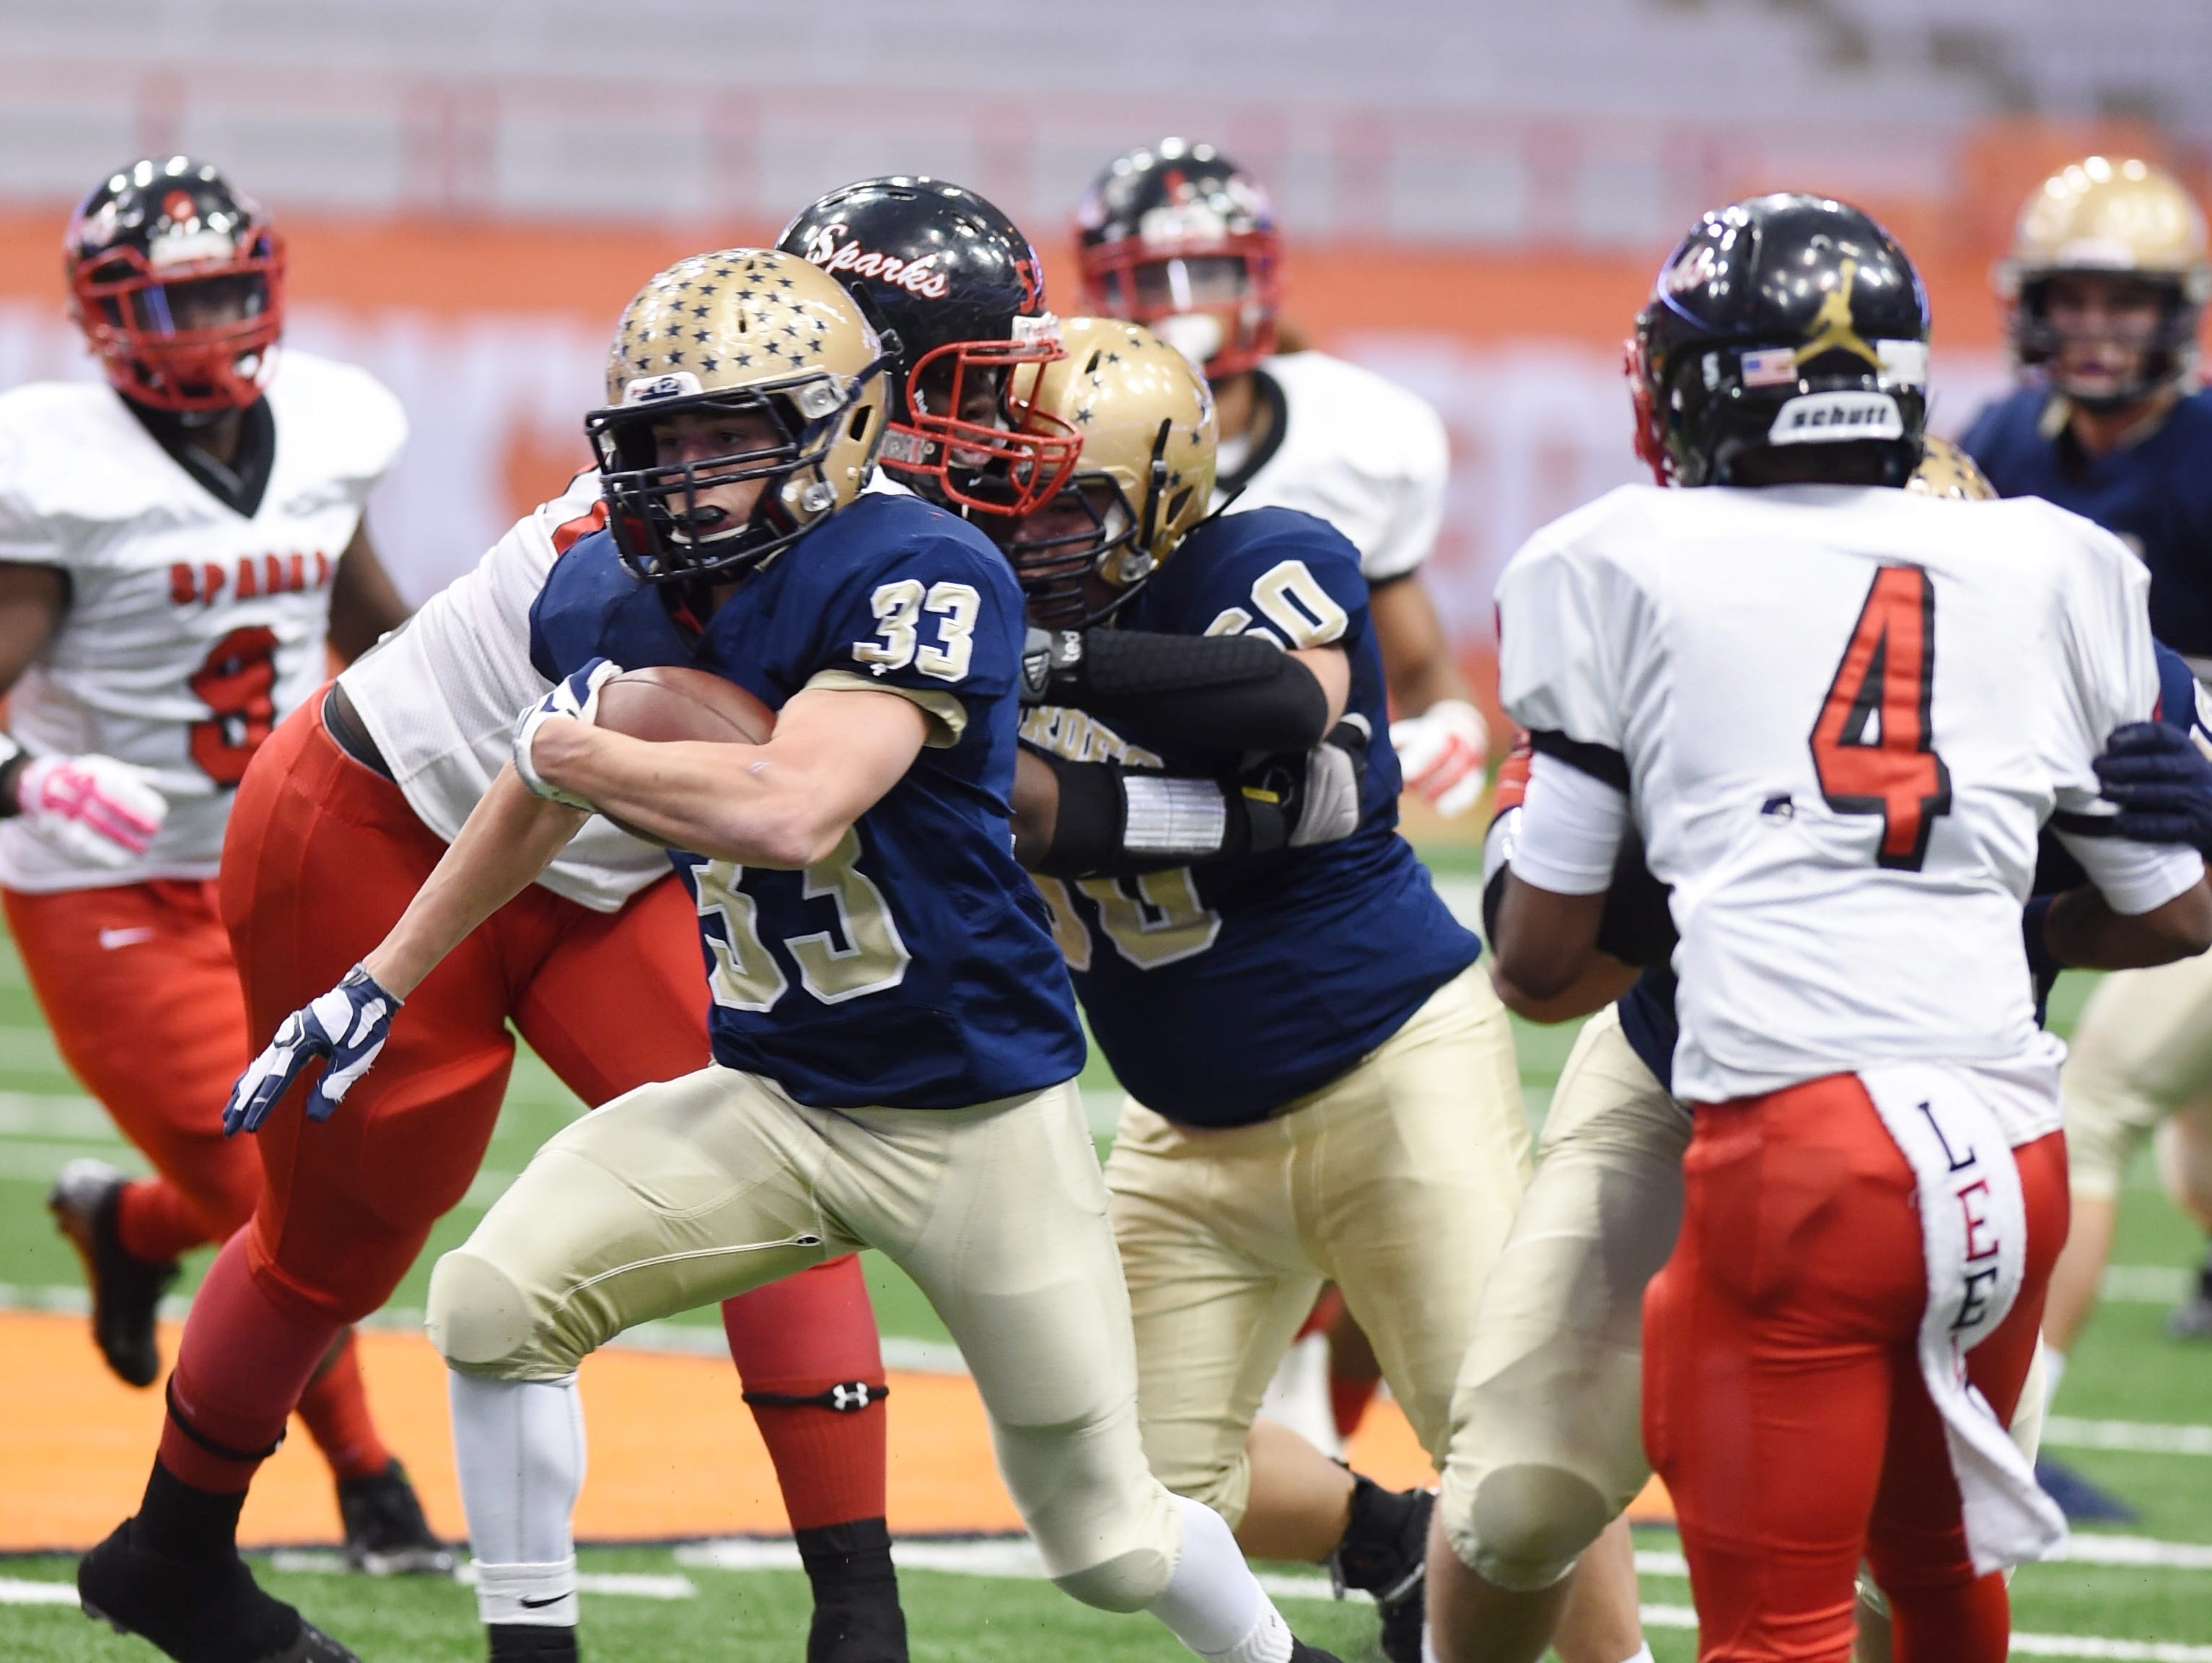 Our Lady of Lourdes High School's Joe Scaglione carries the ball through the South Park defense during the Class A New York State championship in Syracuse on Nov. 27, 2015.